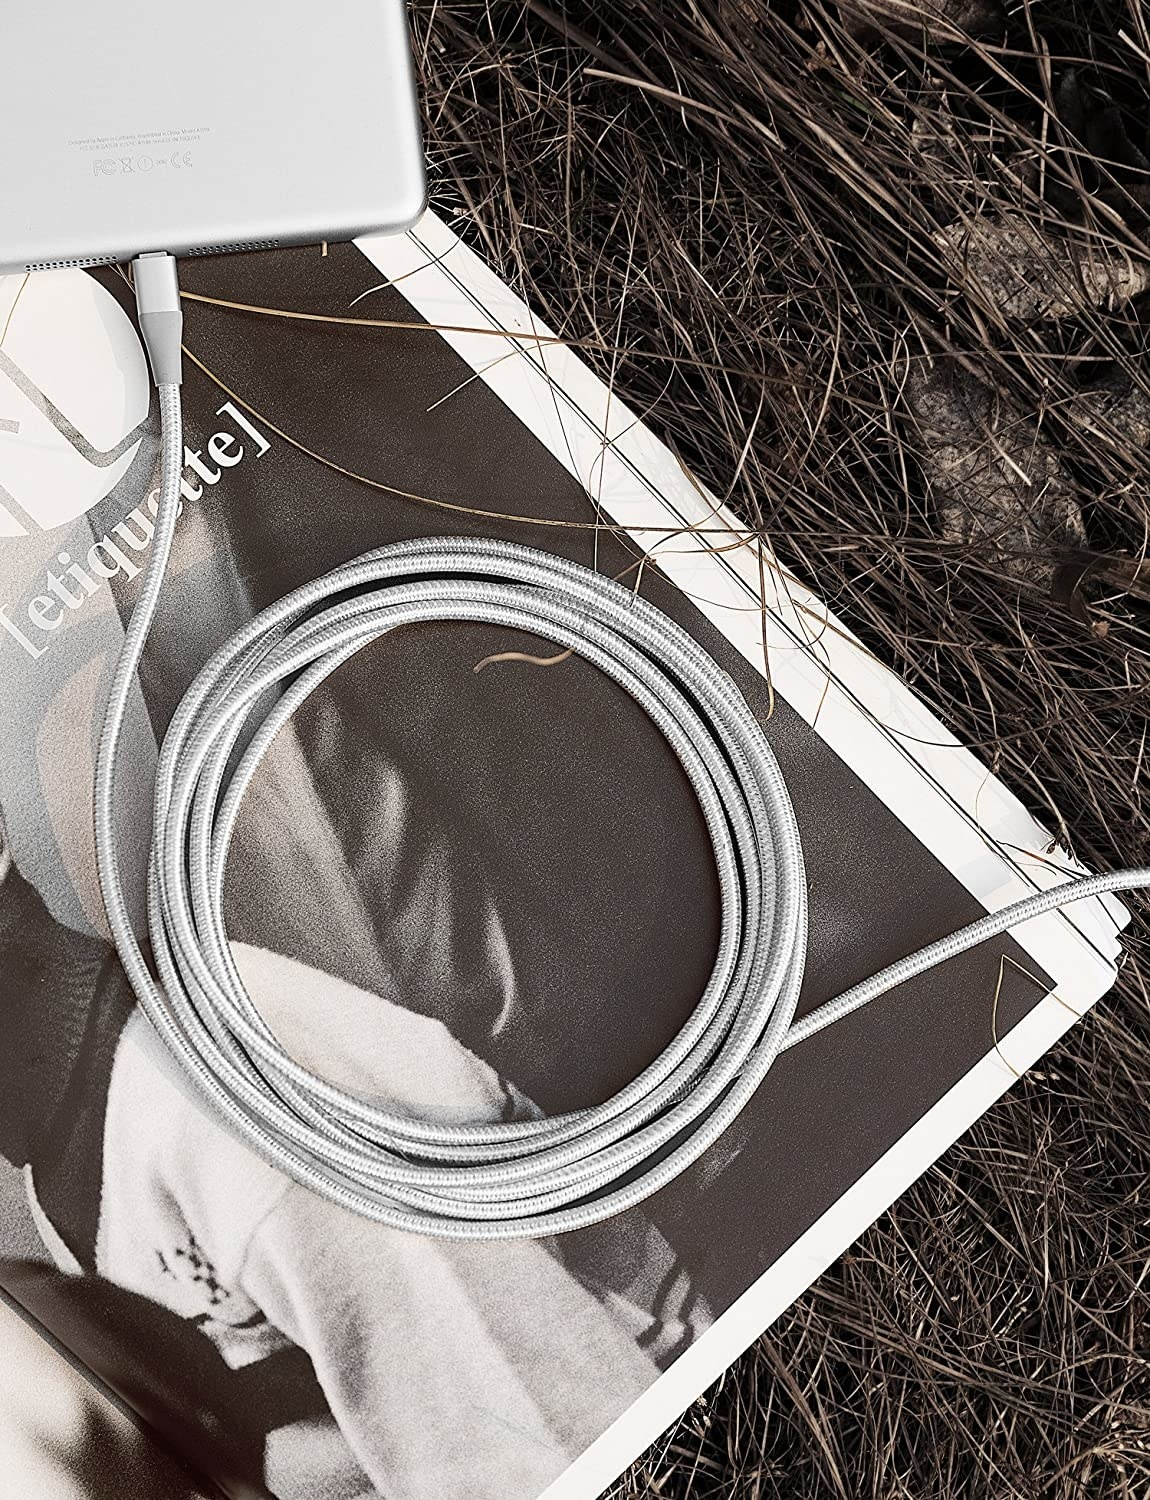 the gray charging cord